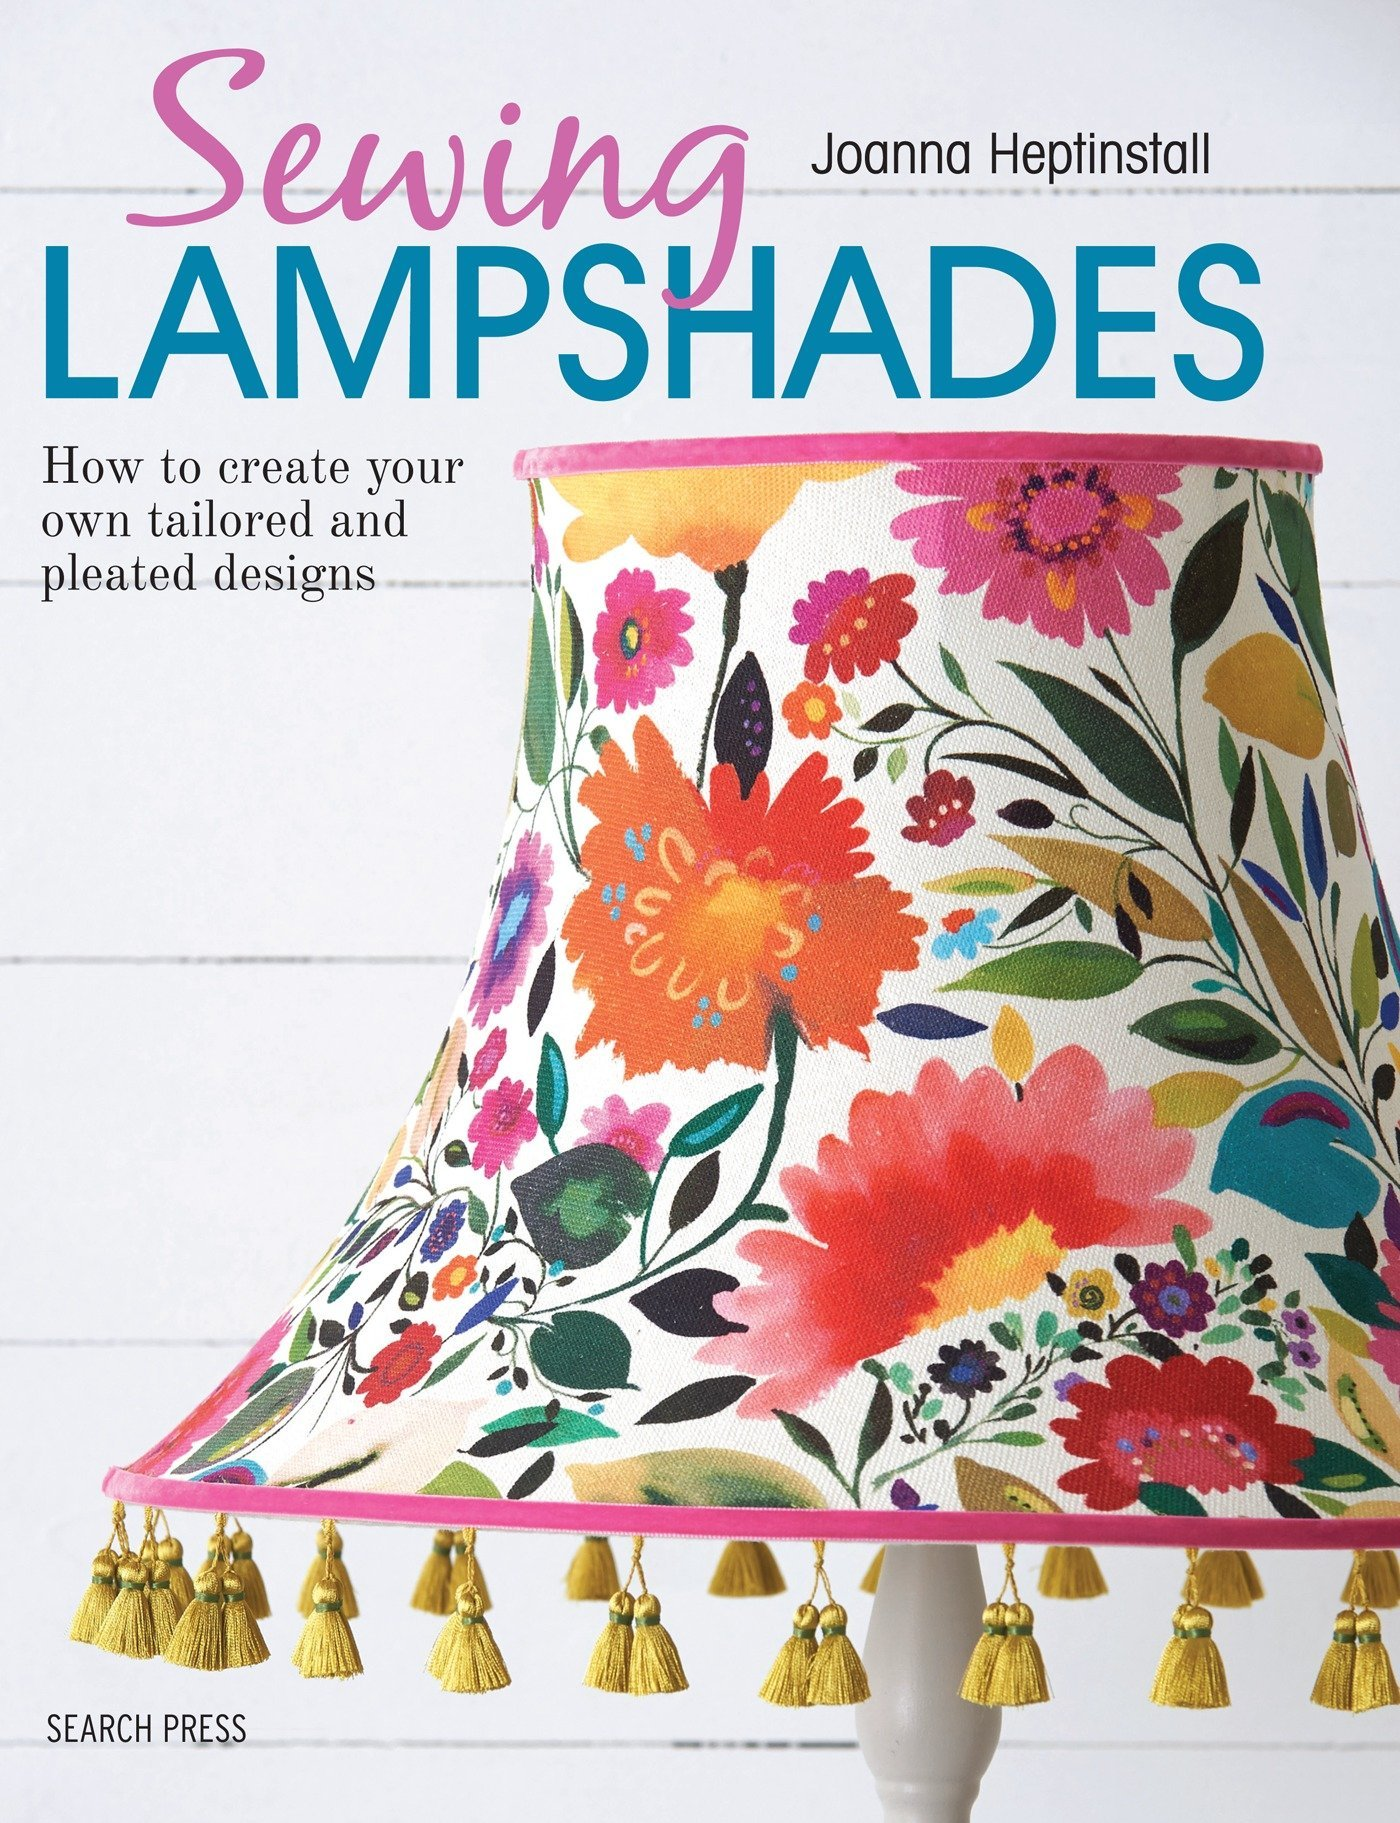 Sewing Lampshades: How to create your own tailored and pleated designs:  Joanna Heptinstall: 9781782214496: Amazon.com: Books